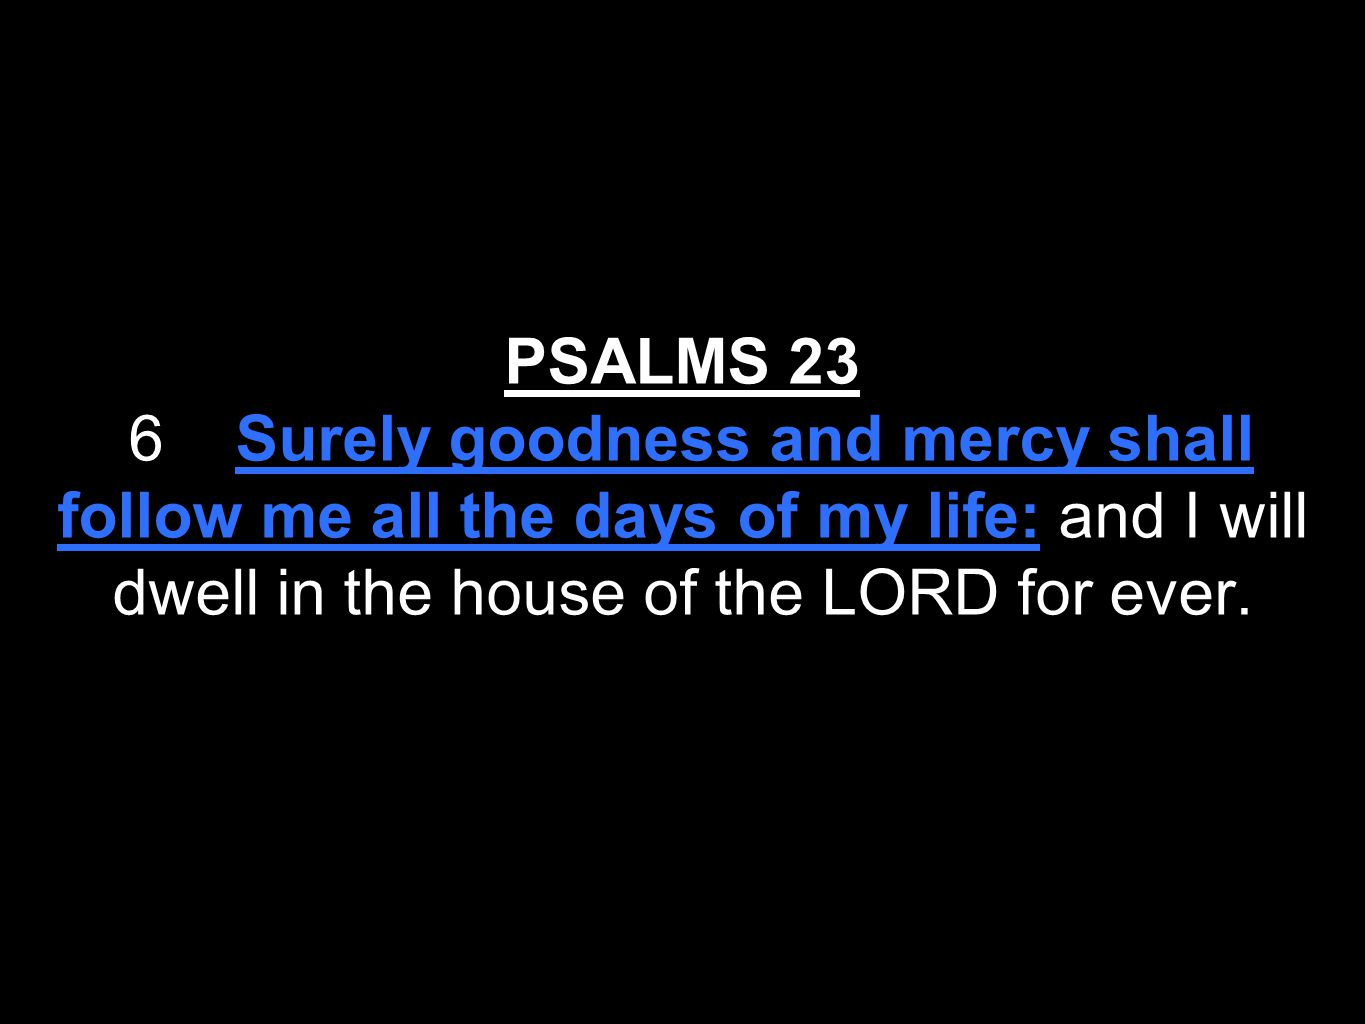 PSALMS 23 6 Surely goodness and mercy shall follow me all the days of my life: and I will dwell in the house of the LORD for ever.